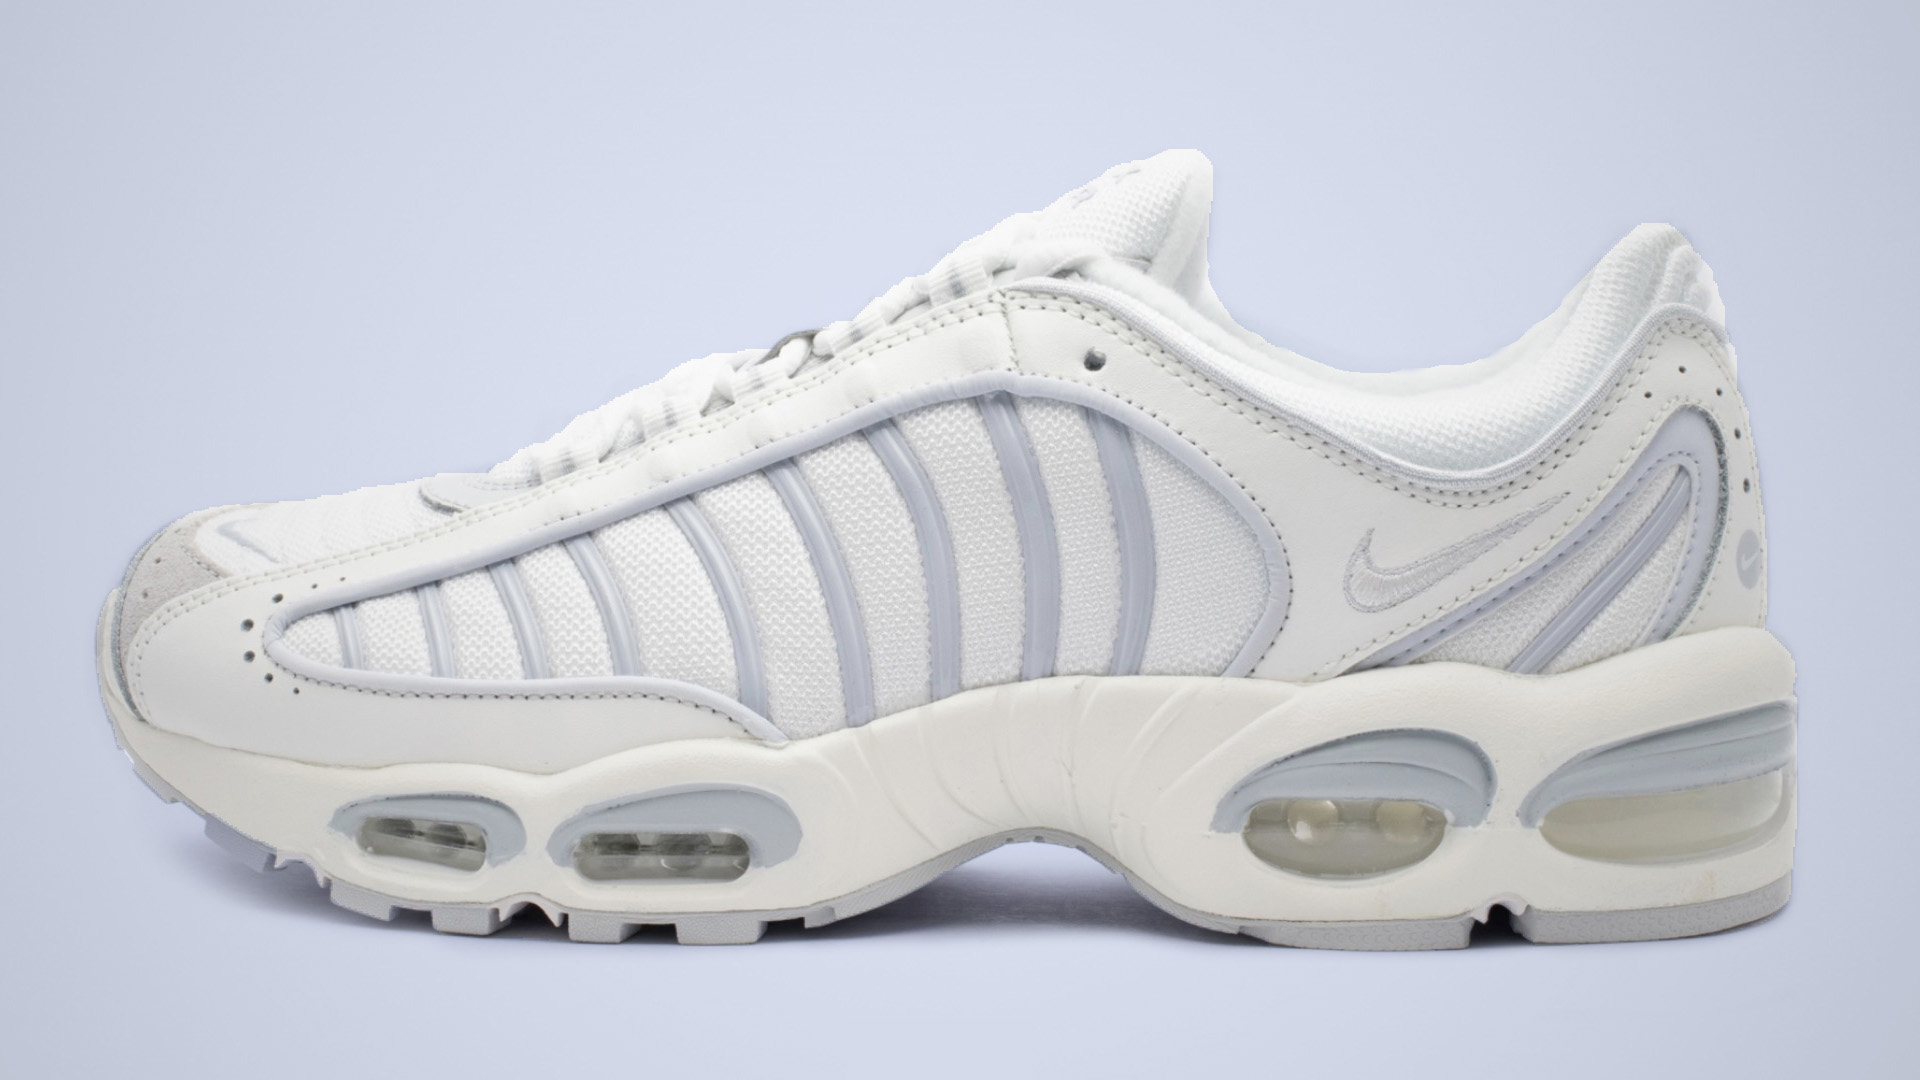 9c1ce222a56f9 Go Retro In The Nike Air Max Tailwind IV 'Pure Platinum' | Style ...